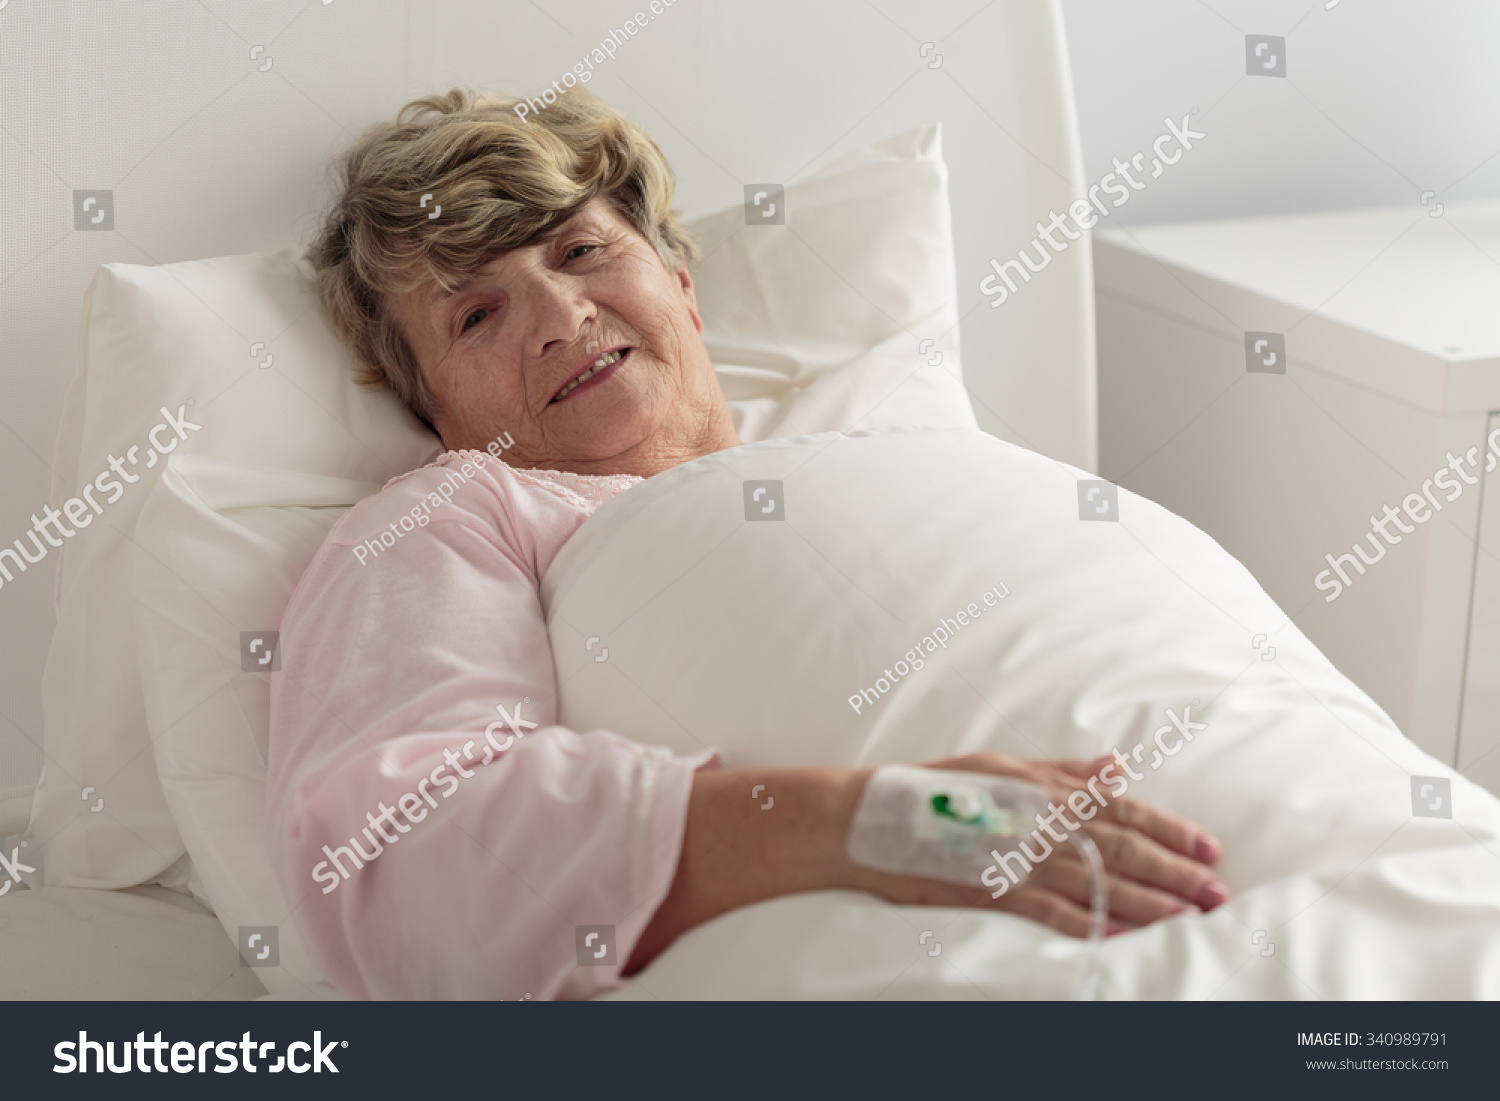 Sick In Hospital Images : Sick In Hospital Bed Image of old sick woman lying in hospital bed ...